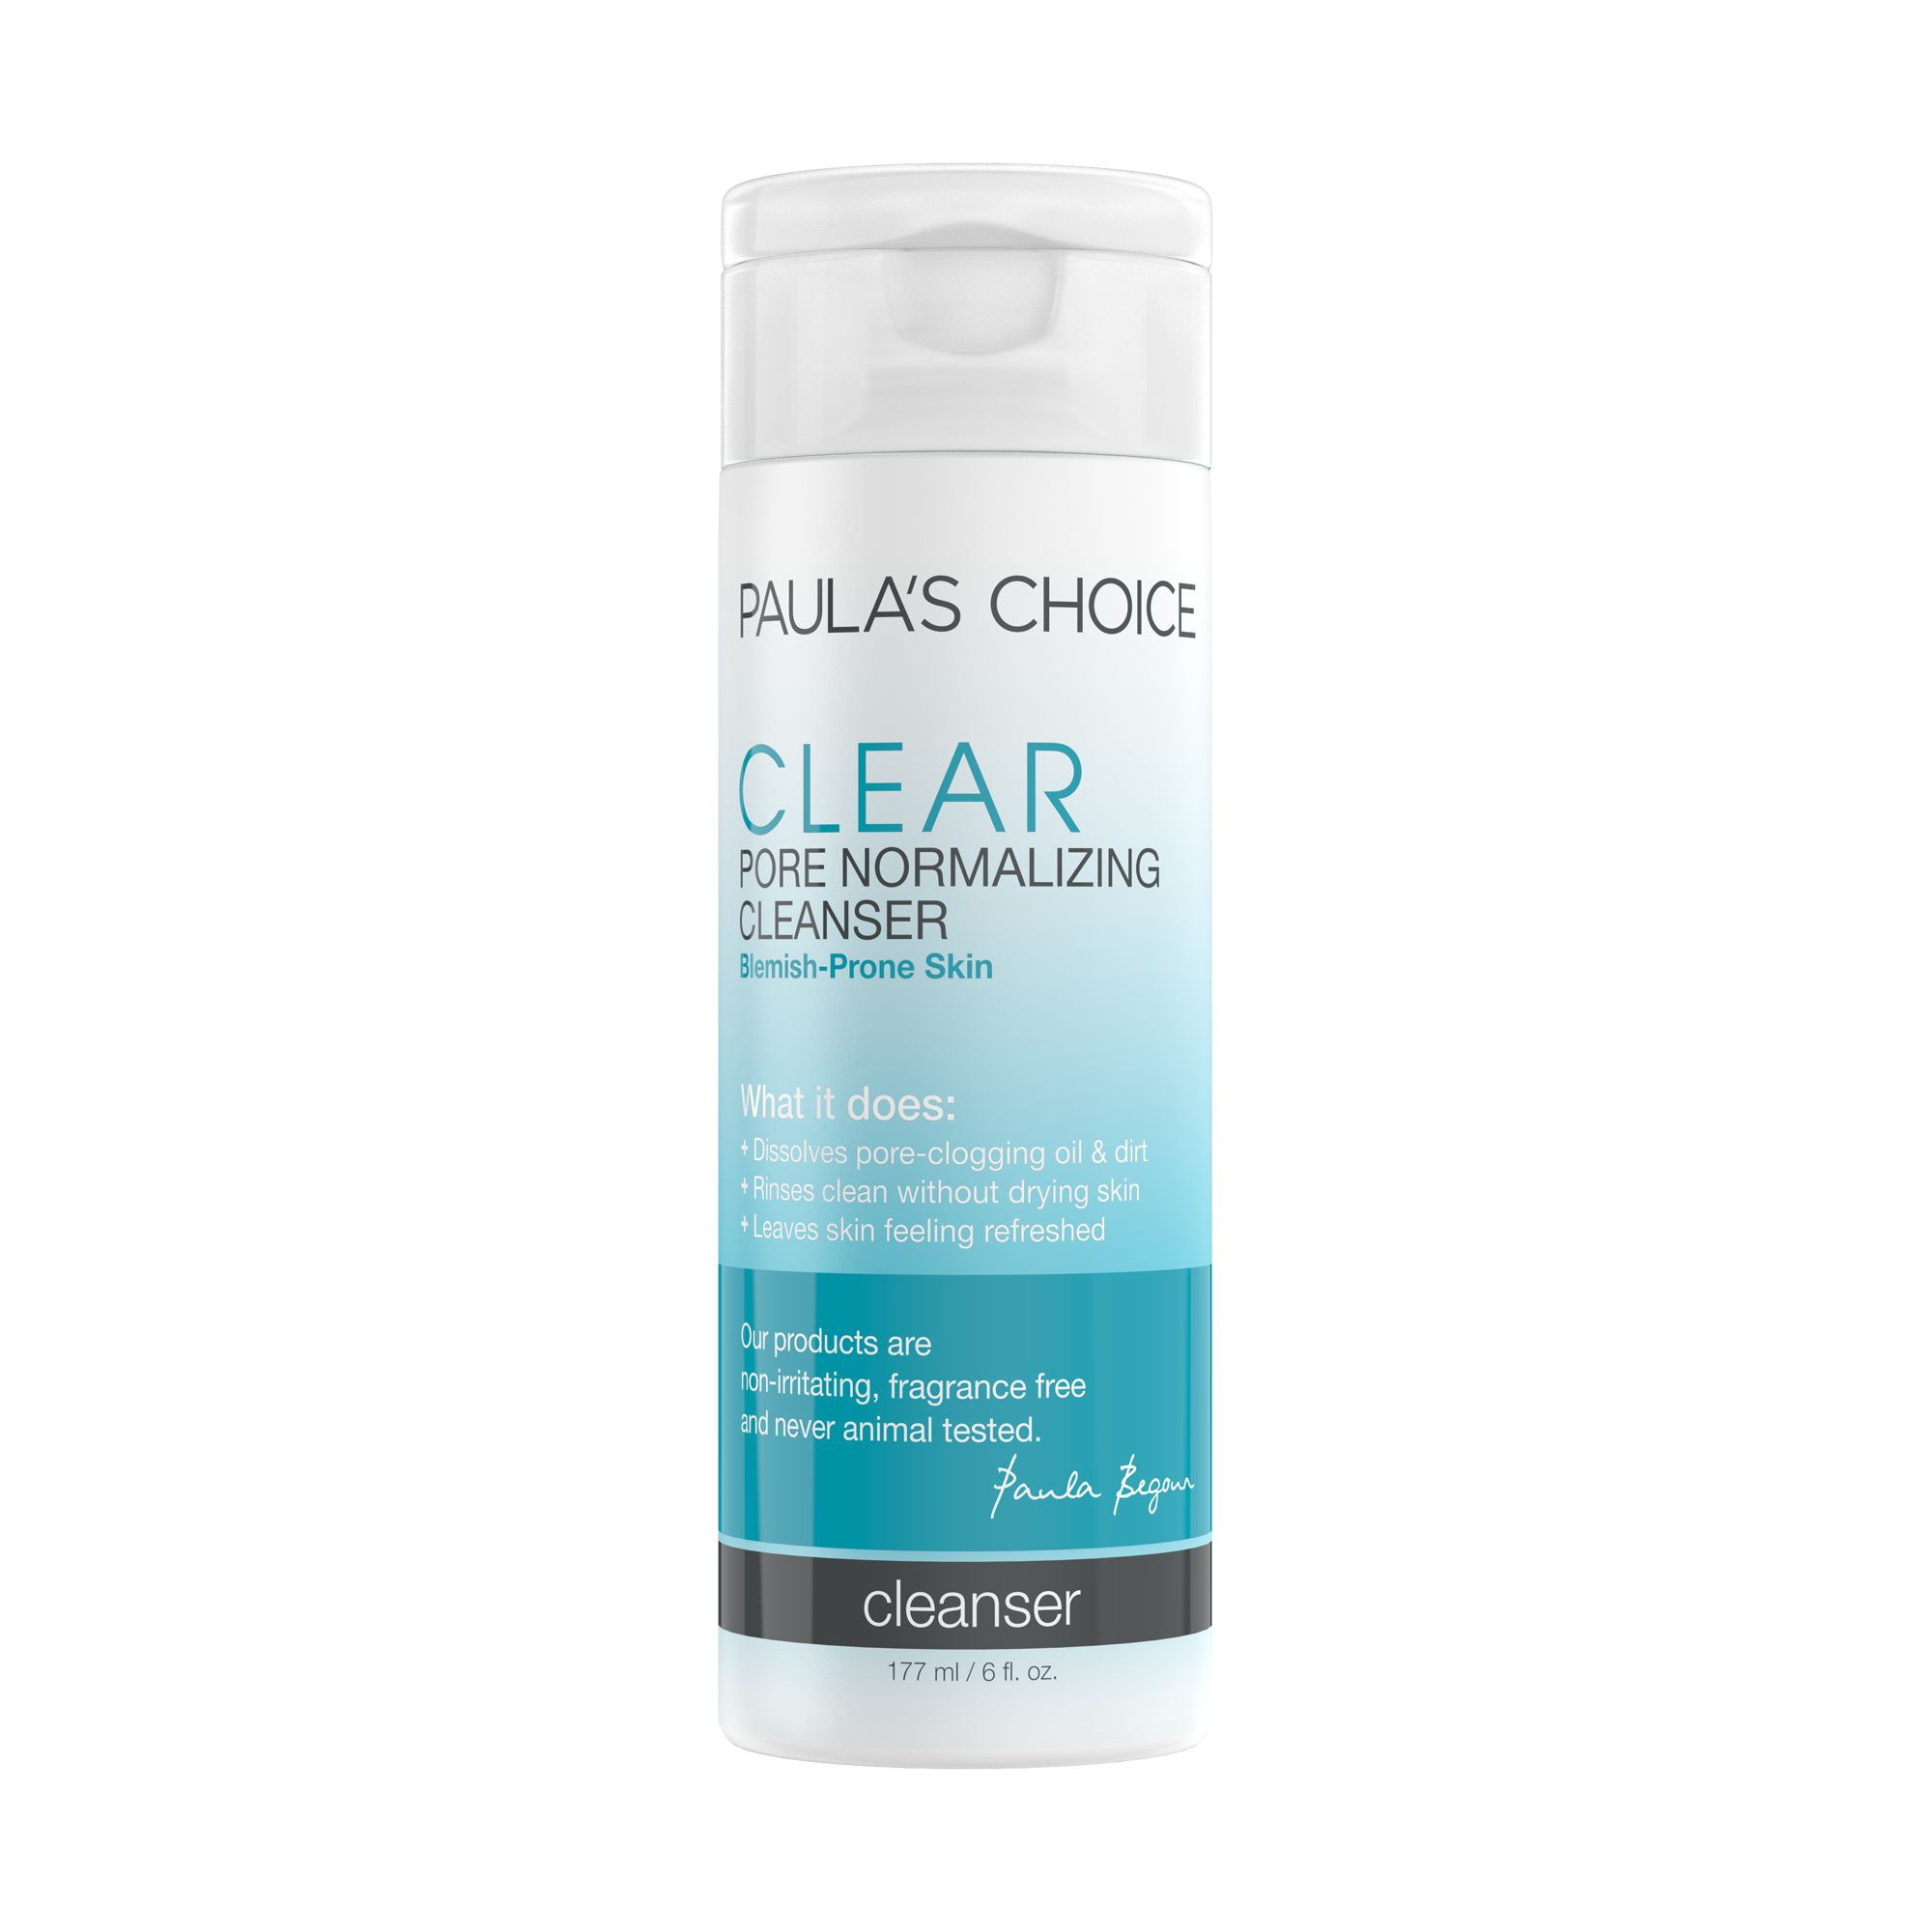 ​CLEAR Pore Normalizing Cleanser